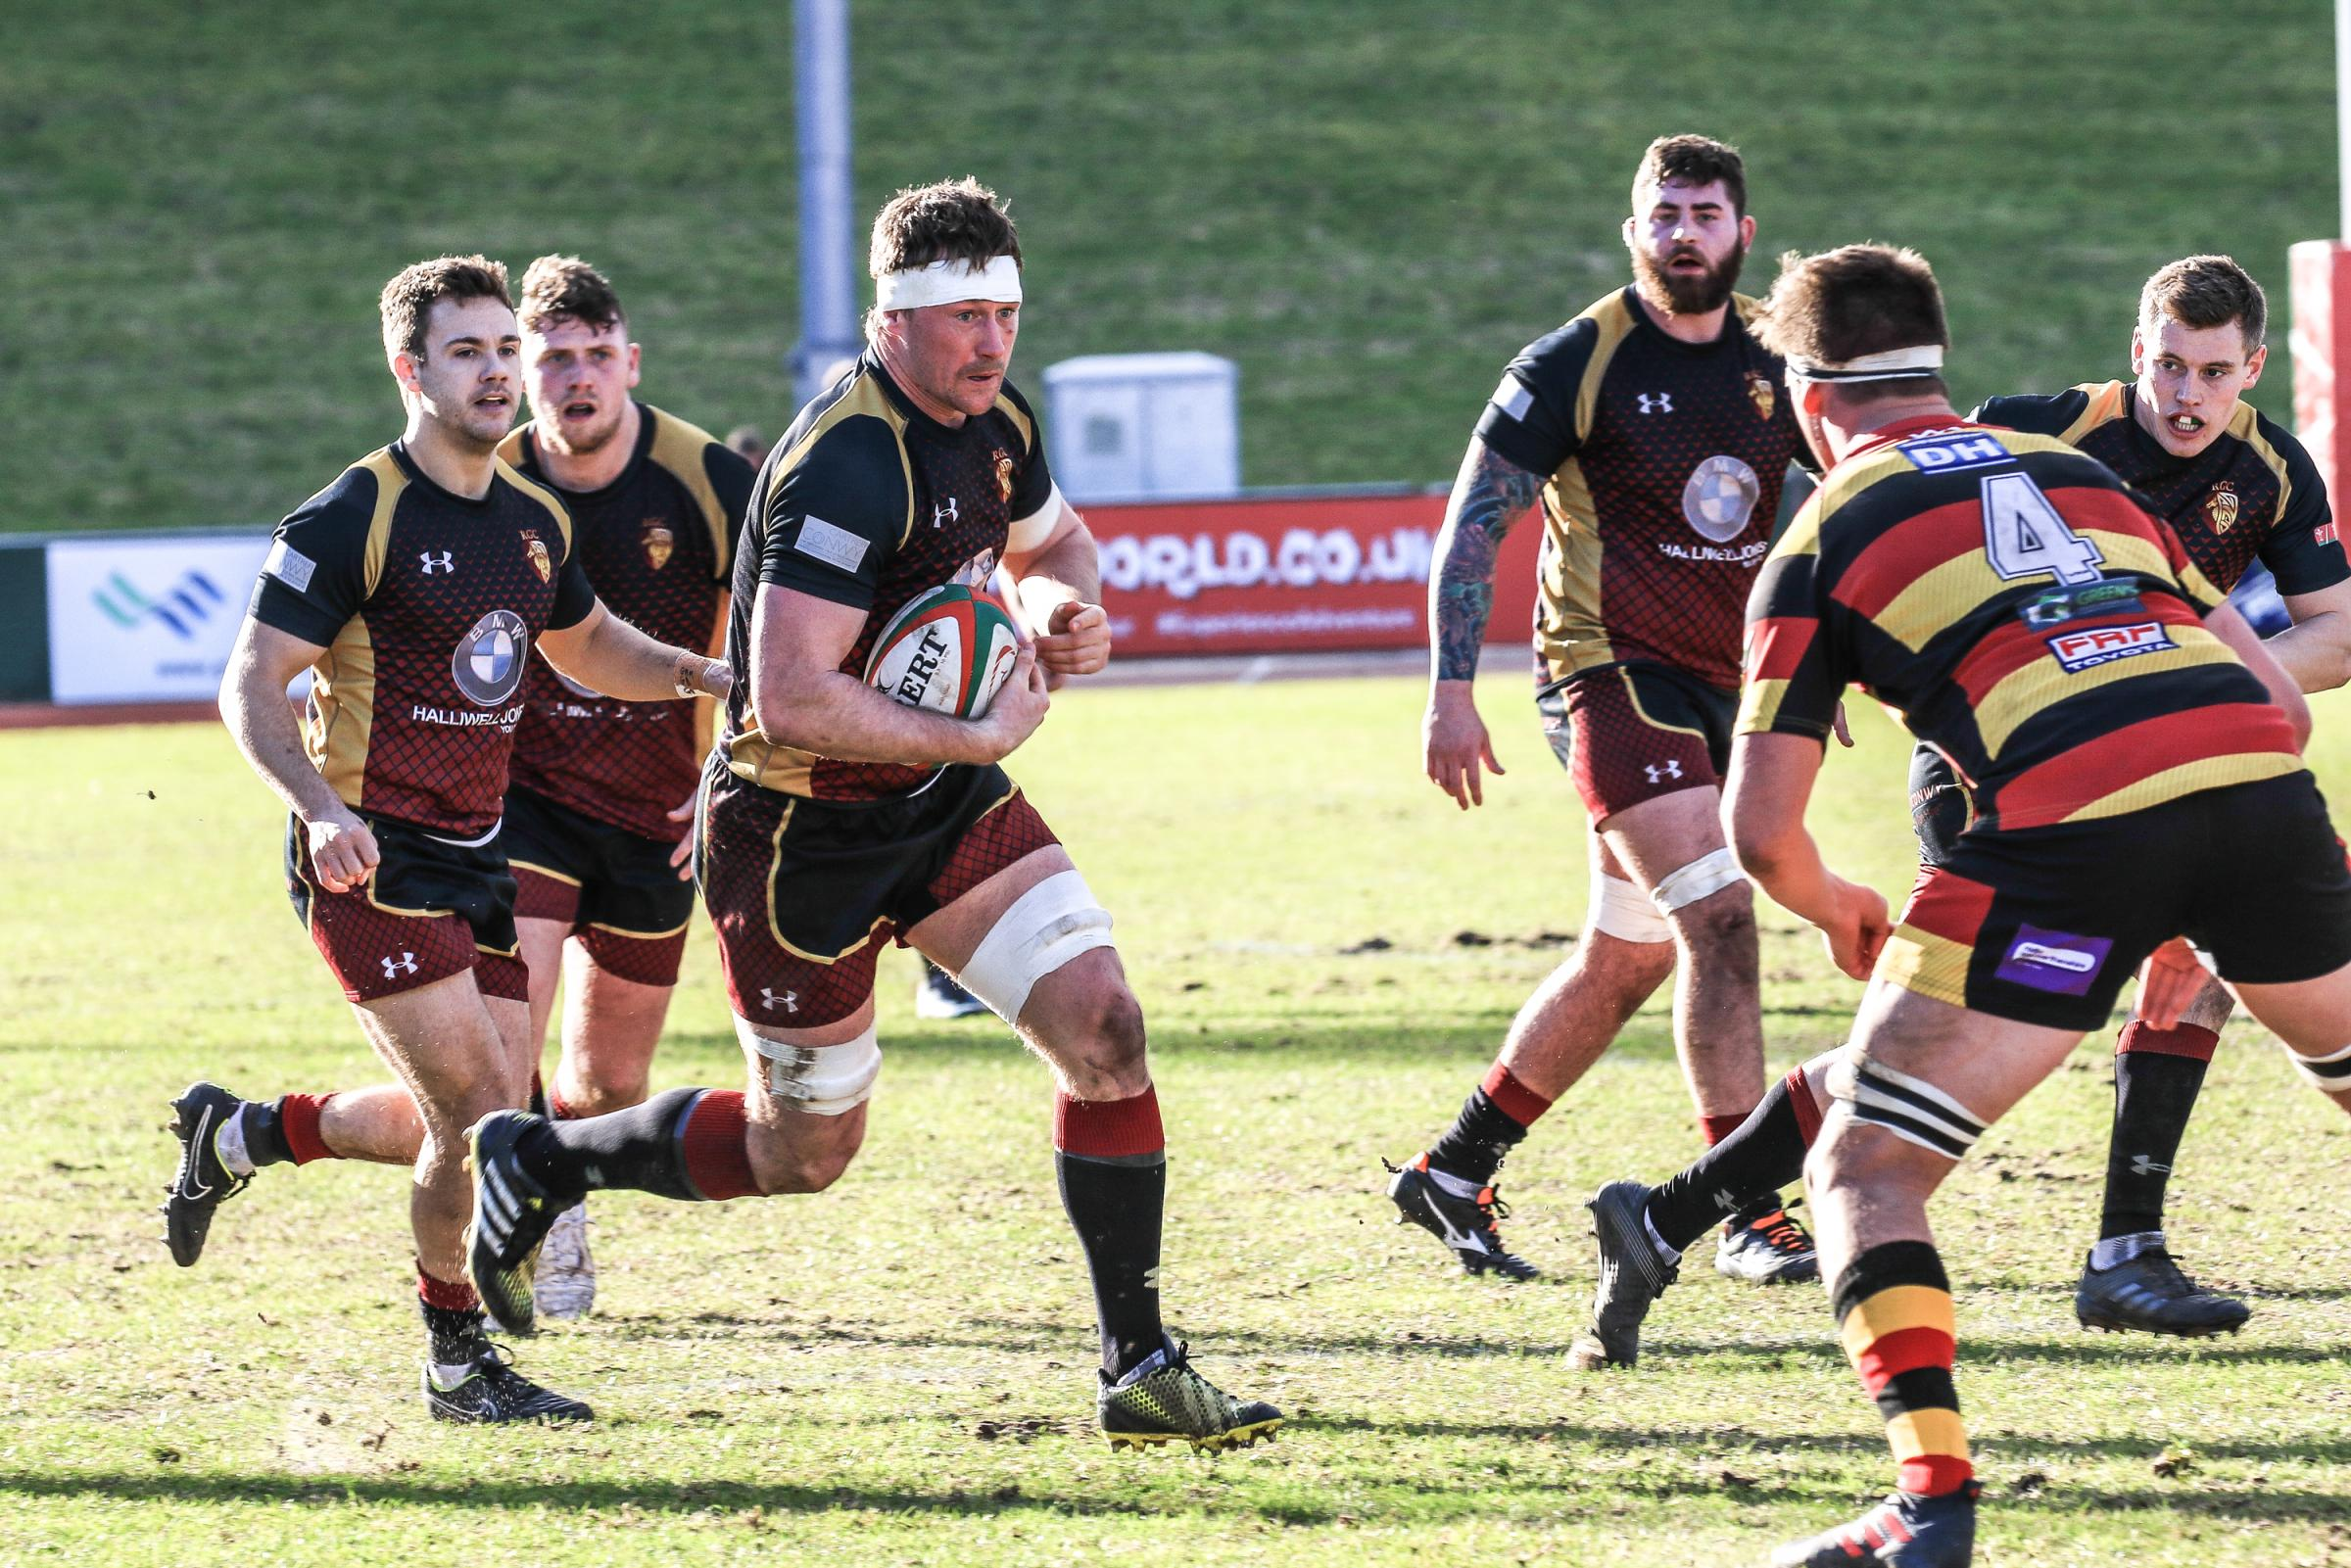 RGC travel to title rivals Cardiff on Monday